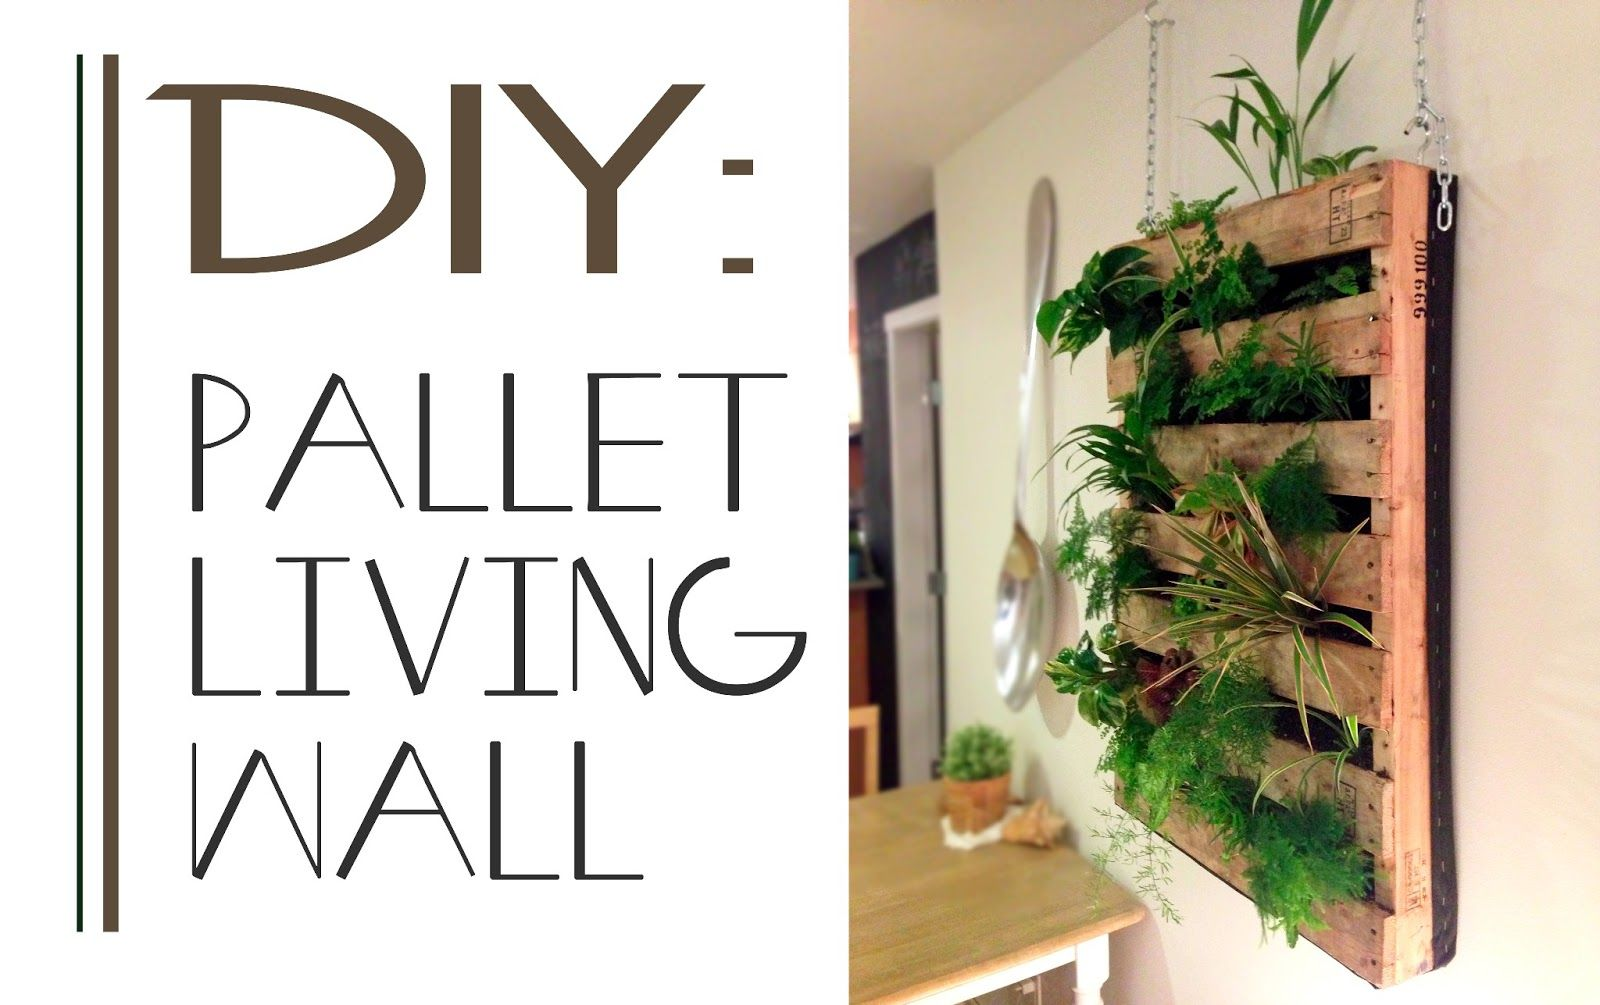 Good The Brew : DIY Pallet Living Wall Excellent For Planting Herbs Or Maybe  Small Fruit Plants Like Strawberries?